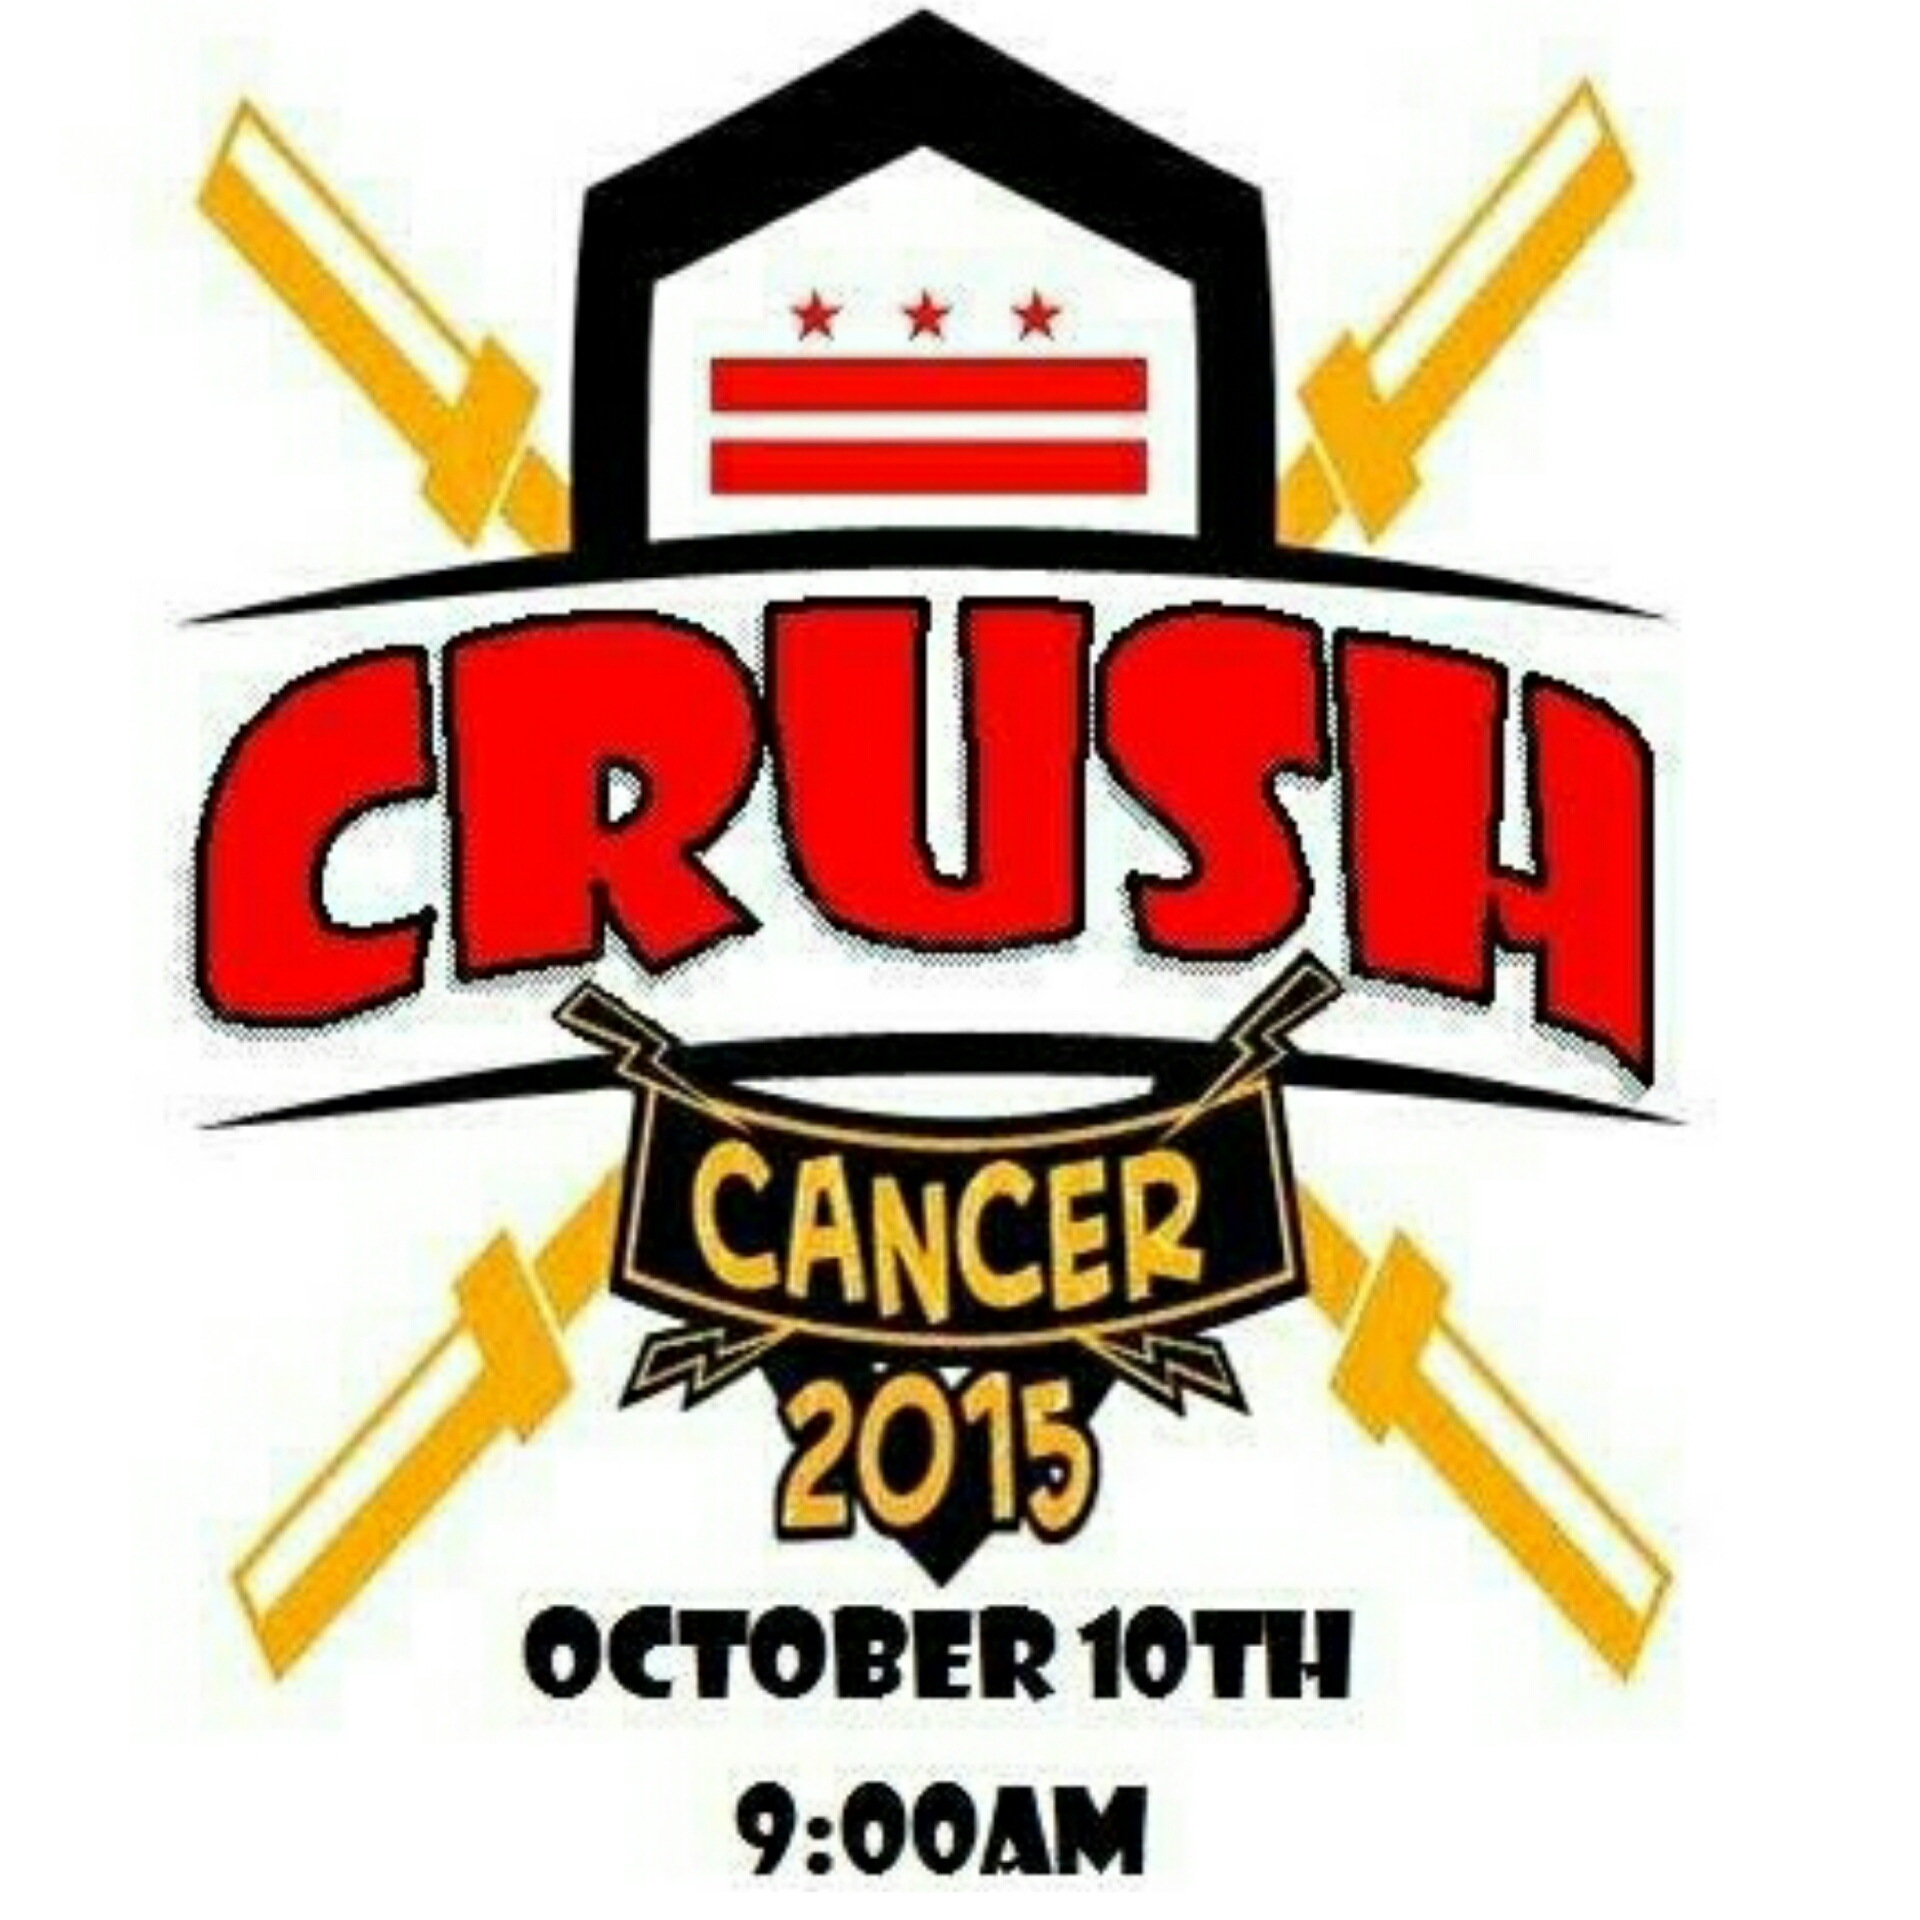 Saturday October 10th 9am  @Humble CrossFit  Cost $10 per person   HERE'S THE STORY:    Dogtown Crossfit wrote -   Cancer has touched all our lives, some of us, have lost loved ones. It's time to Crush Cancer.    Help find a cure for Cancer! In 2009, DogTown (then CrossFit Culver City) was the top fundraising affiliate for FIGHT GONE BAD 4 in the world, raising 64,000 dollars for Prostate Cancer, Research and the Wounded Warrior Foundation. In 2010, newly opened DogTown CrossFit, was the second leading fundraising affiliate in the world for FIGHT GONE BAD 5 with just over 53,000 dollars. Last year we raised over 50,000 in the first annual Crush Cancer event. Please donate, participate and help us find a Cure for Cancer.......!!!!    Workout:   3 Rounds- 1 min. Each Station.   - Power Clea  ns - Kettlebell Swings - Burpees - Shoulder to Overhead, - Double Unders Accumulate as many reps as possible  Cost will be $10 at the door.    EPIC WOD - EPIC CAUSE